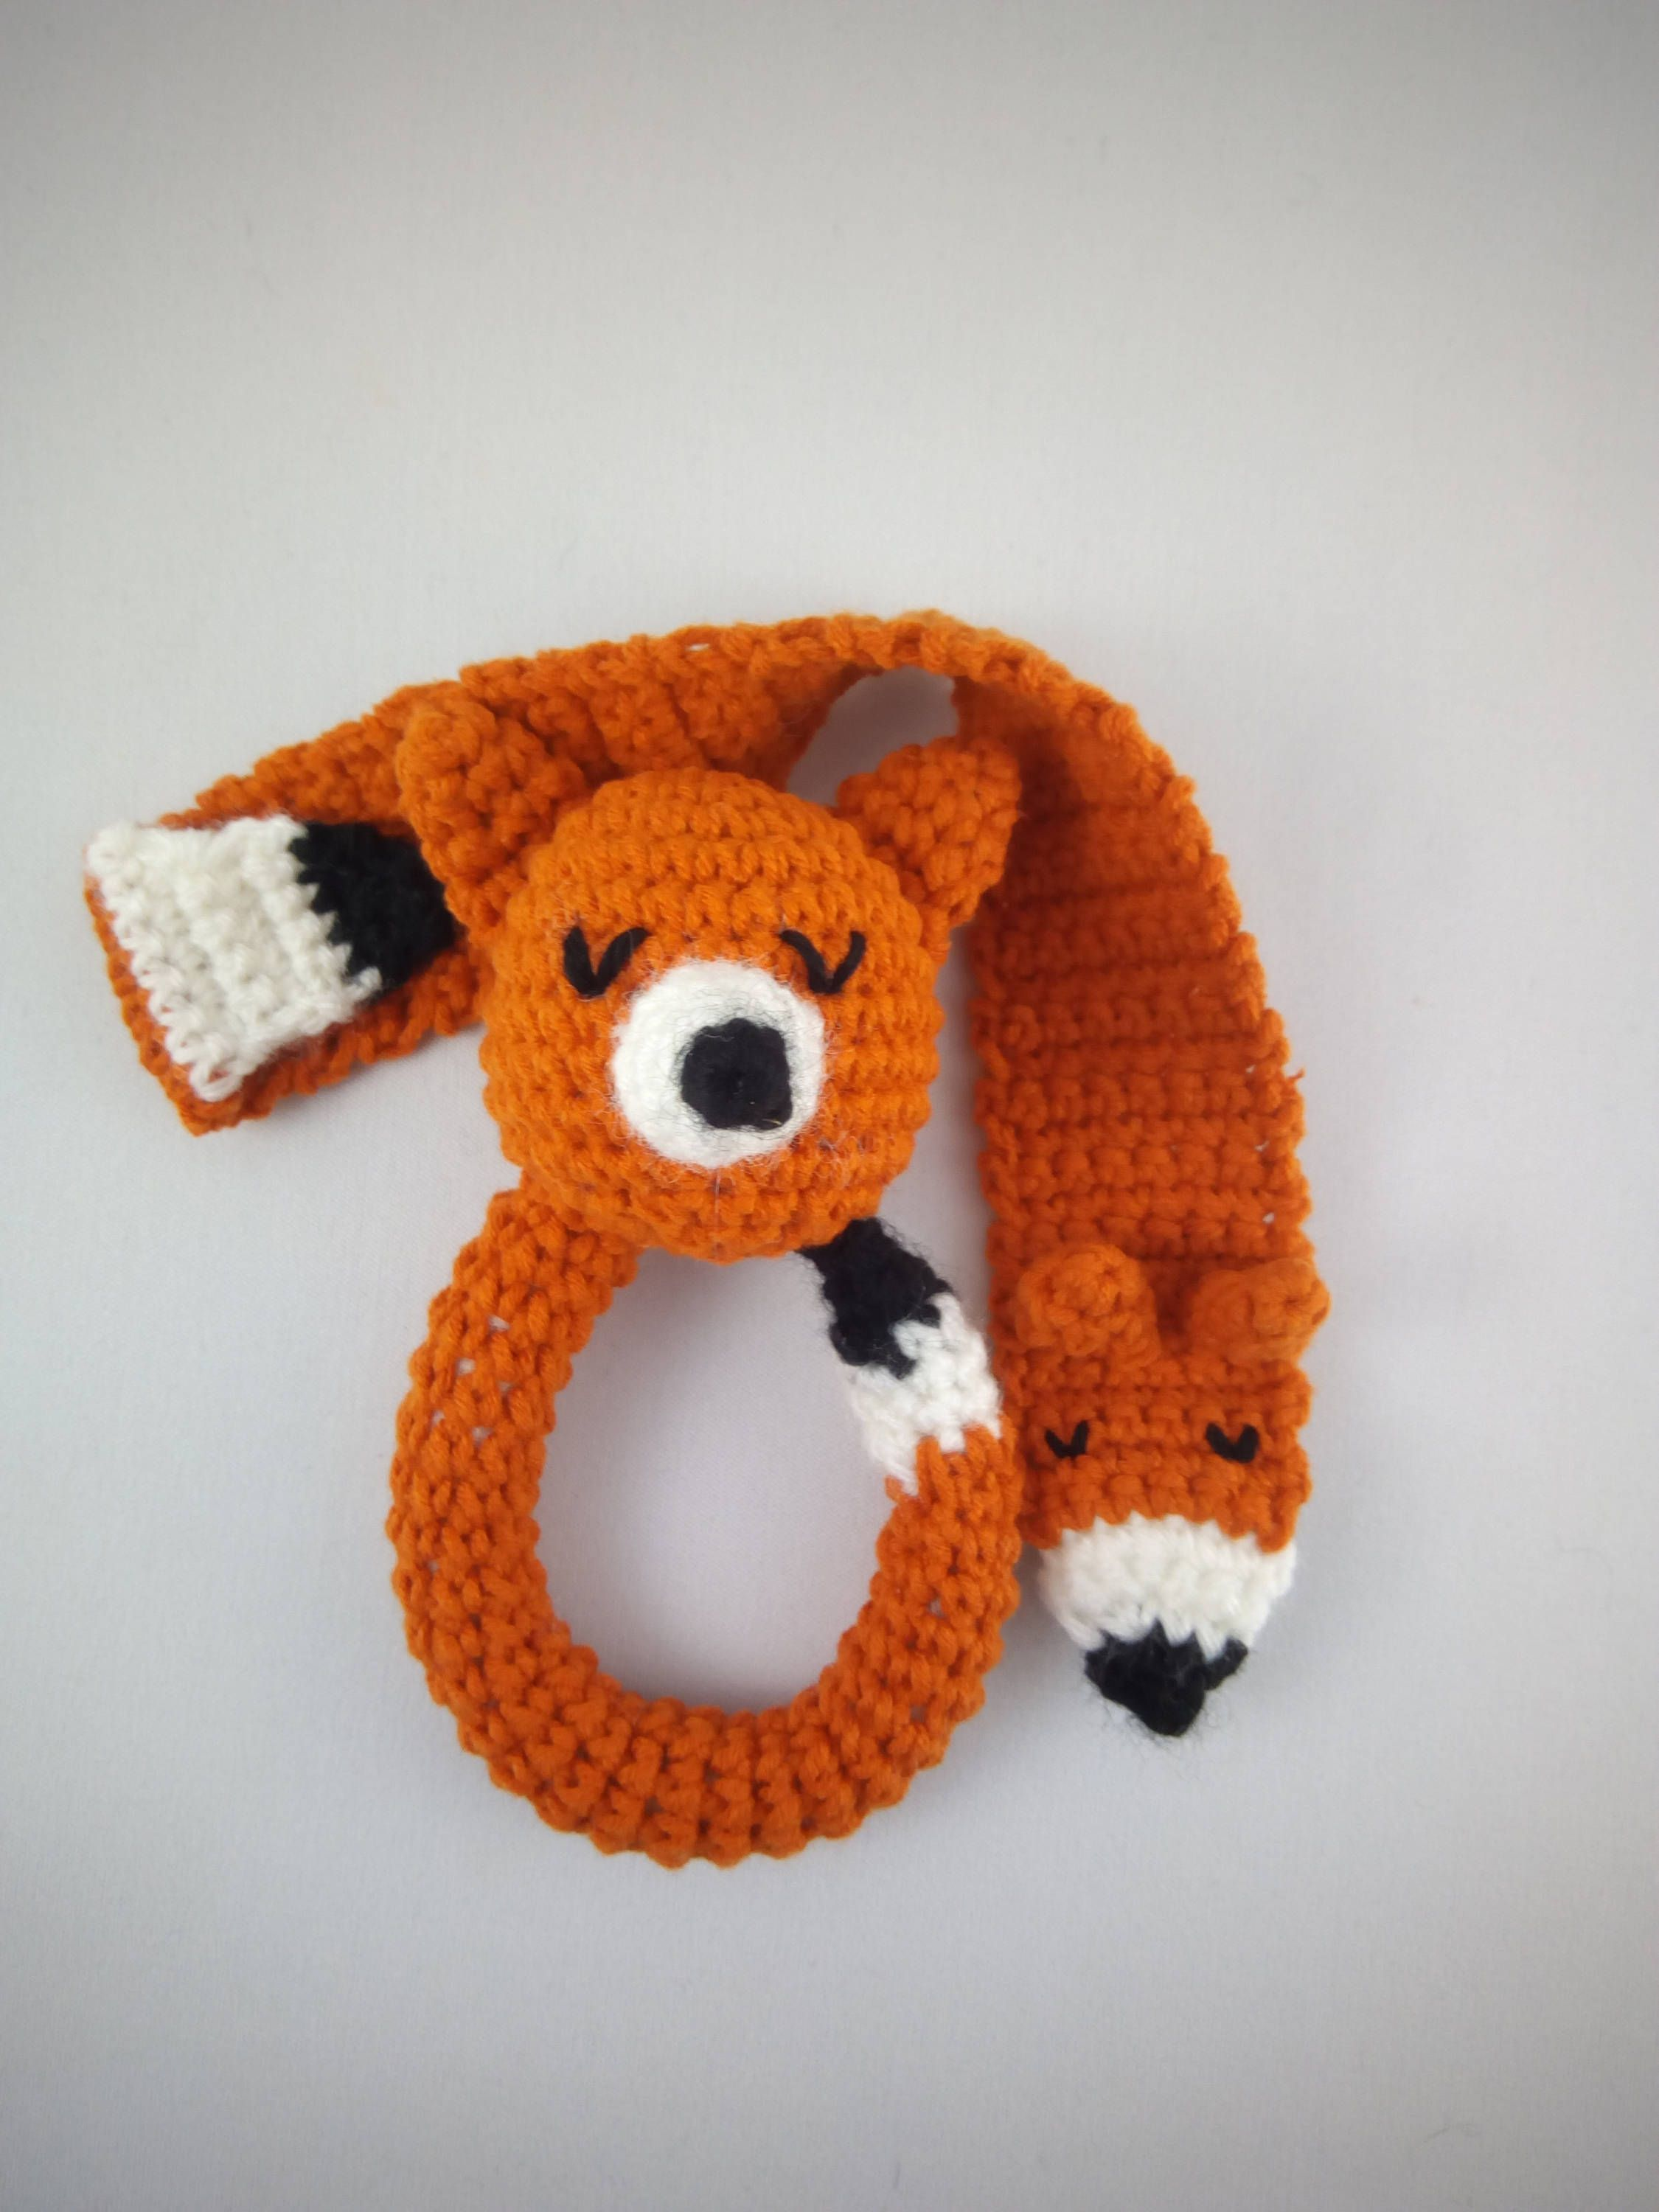 Kit for beginner crochet: rattle Fox and her pacifier attached